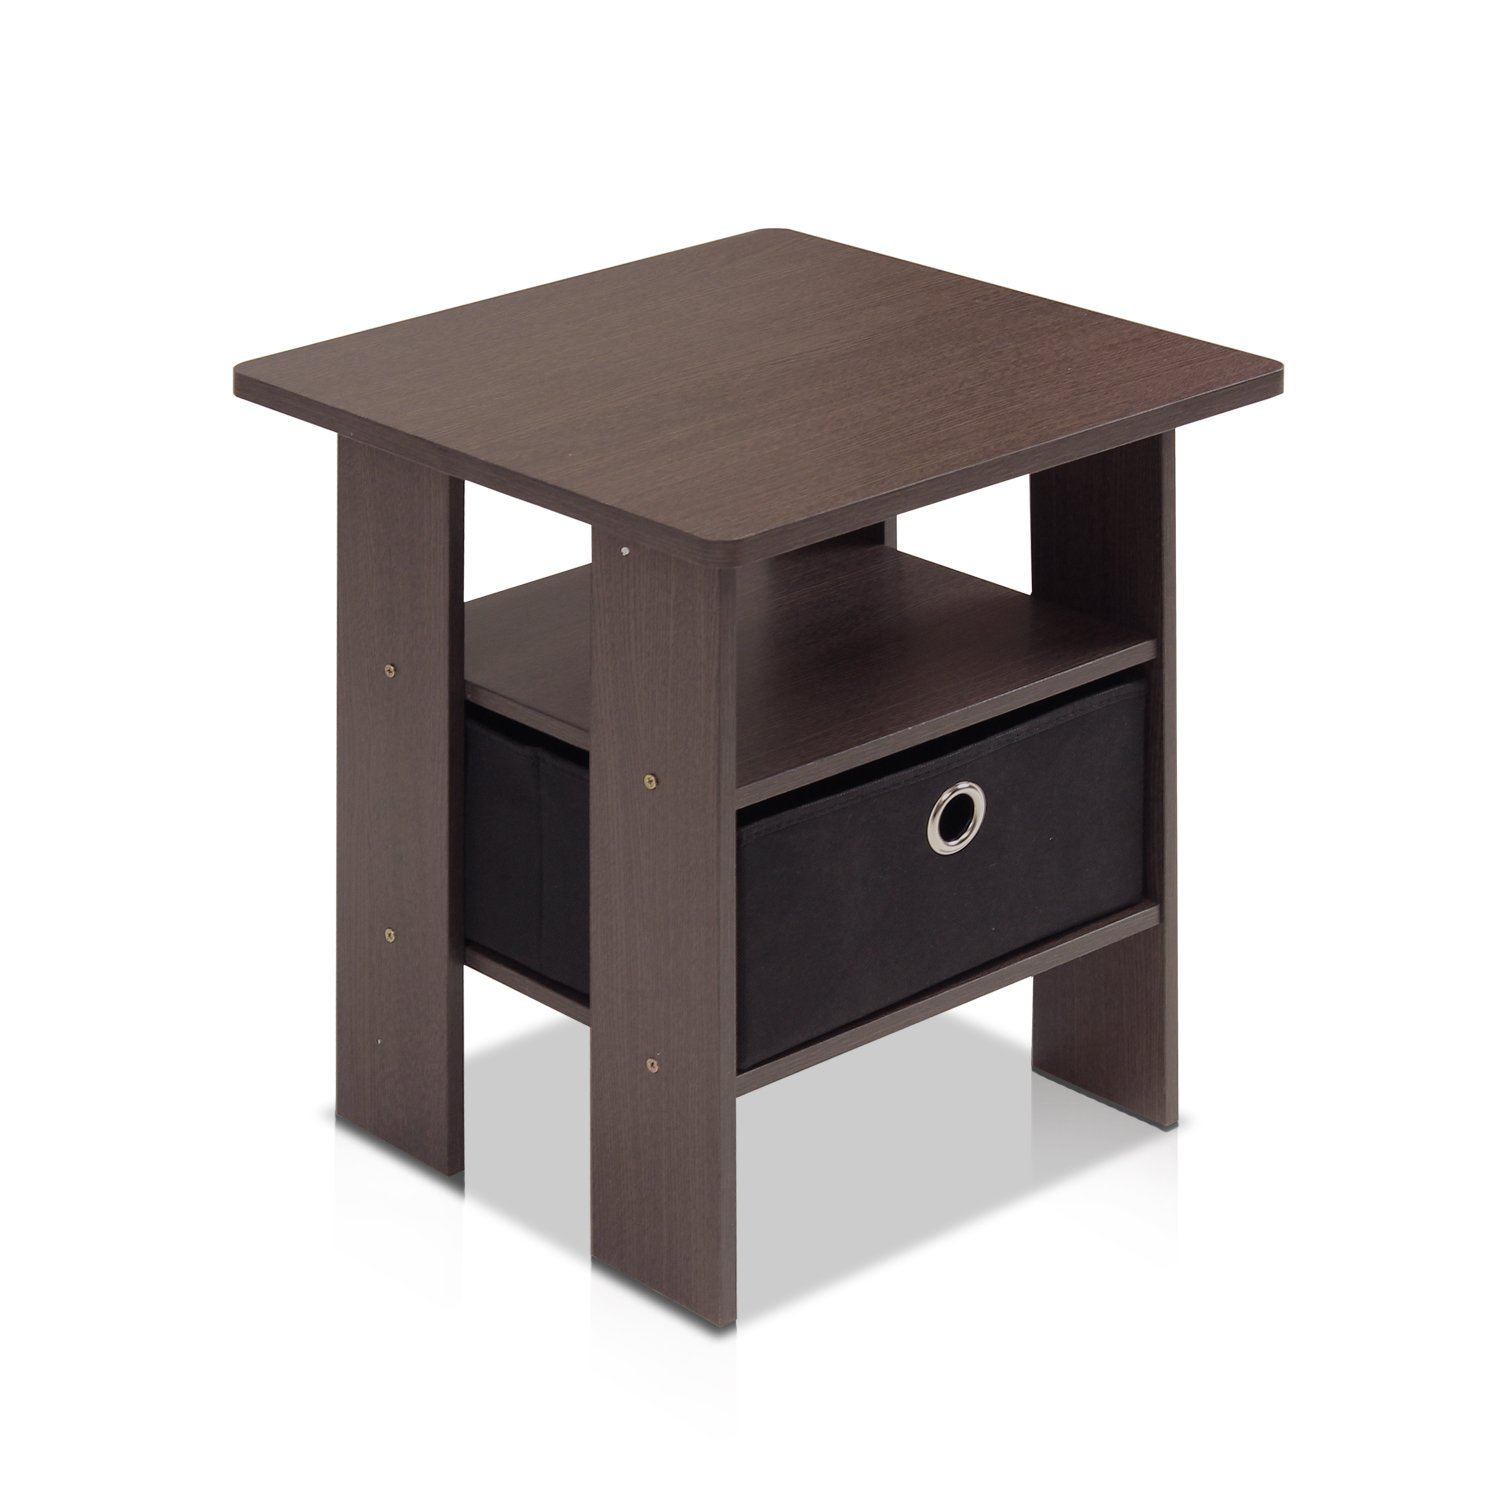 Table In Bedroom Amazoncom Furinno 11157dbr Bk End Table Bedroom Night Stand W